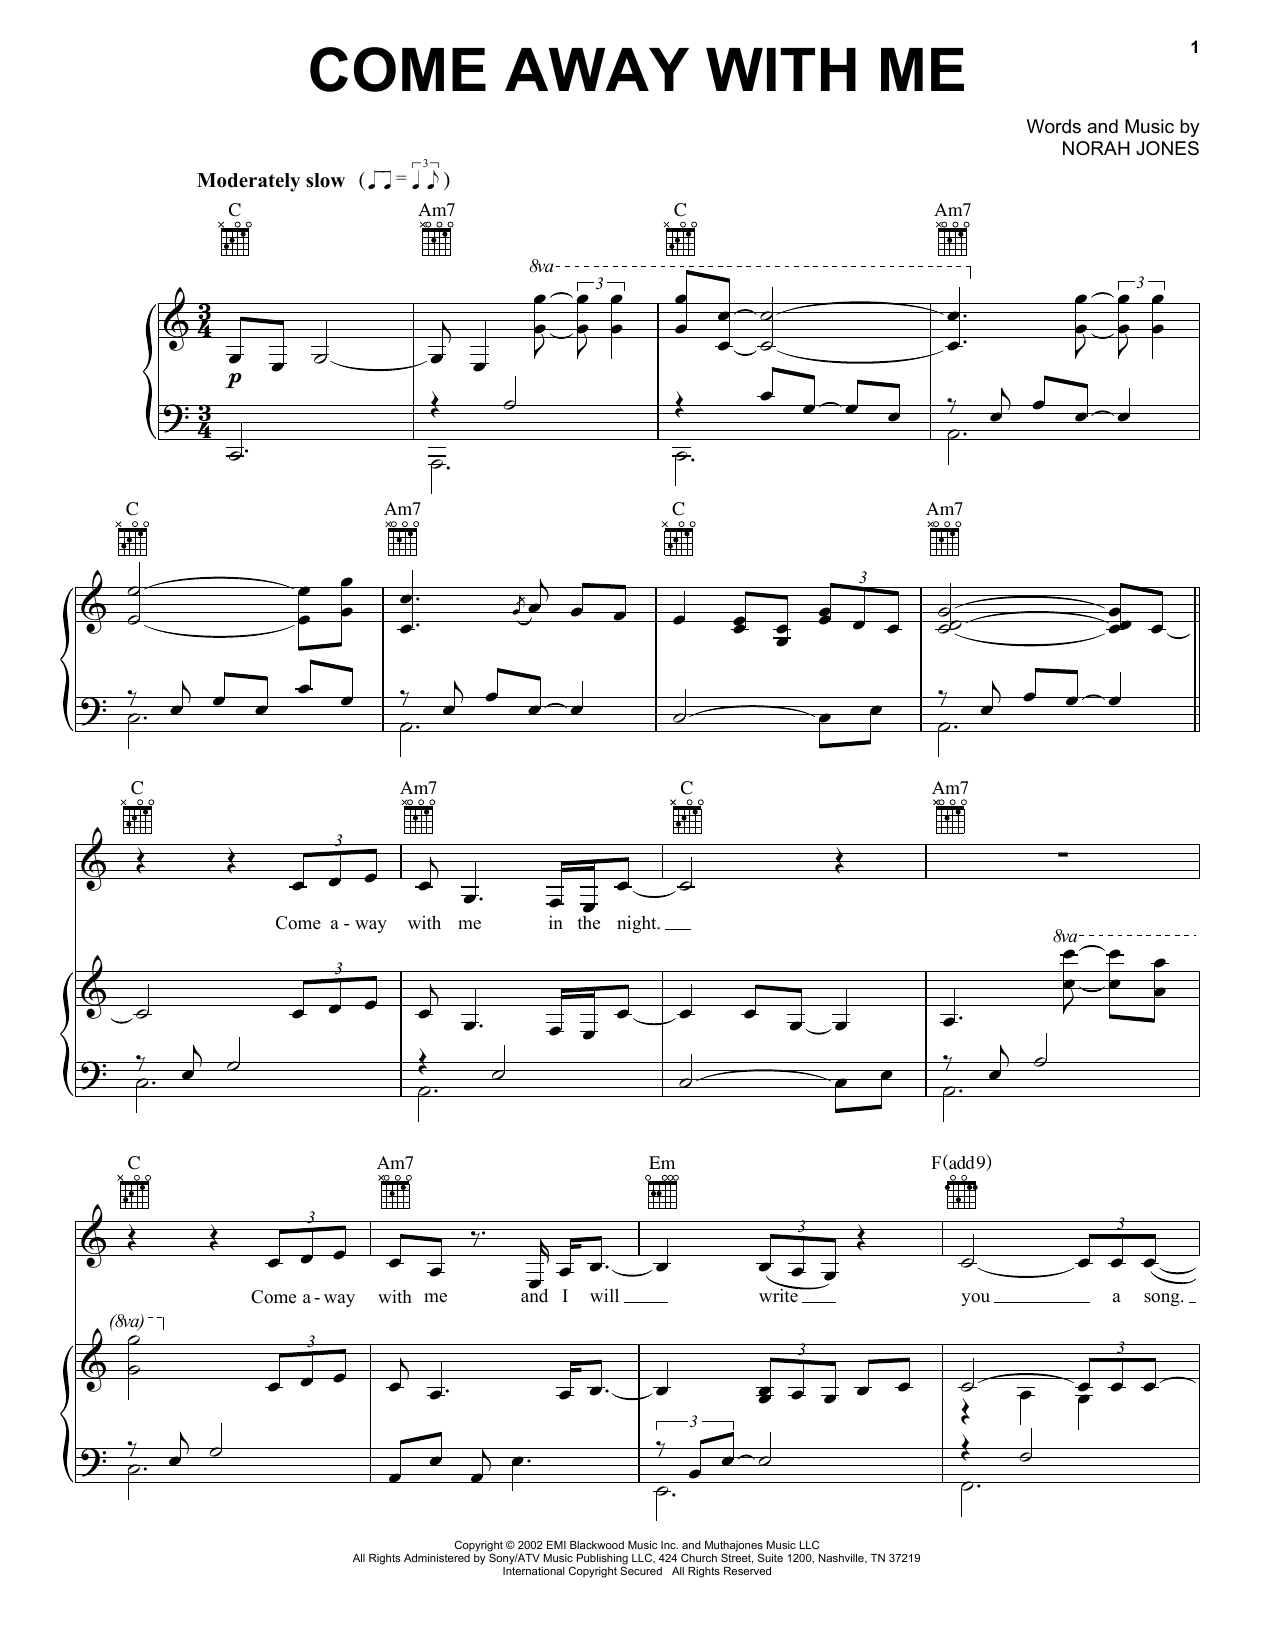 Norah Jones 'Come Away With Me' Sheet Music Notes, Chords   Download  Printable Solo Guitar Tab   SKU 15